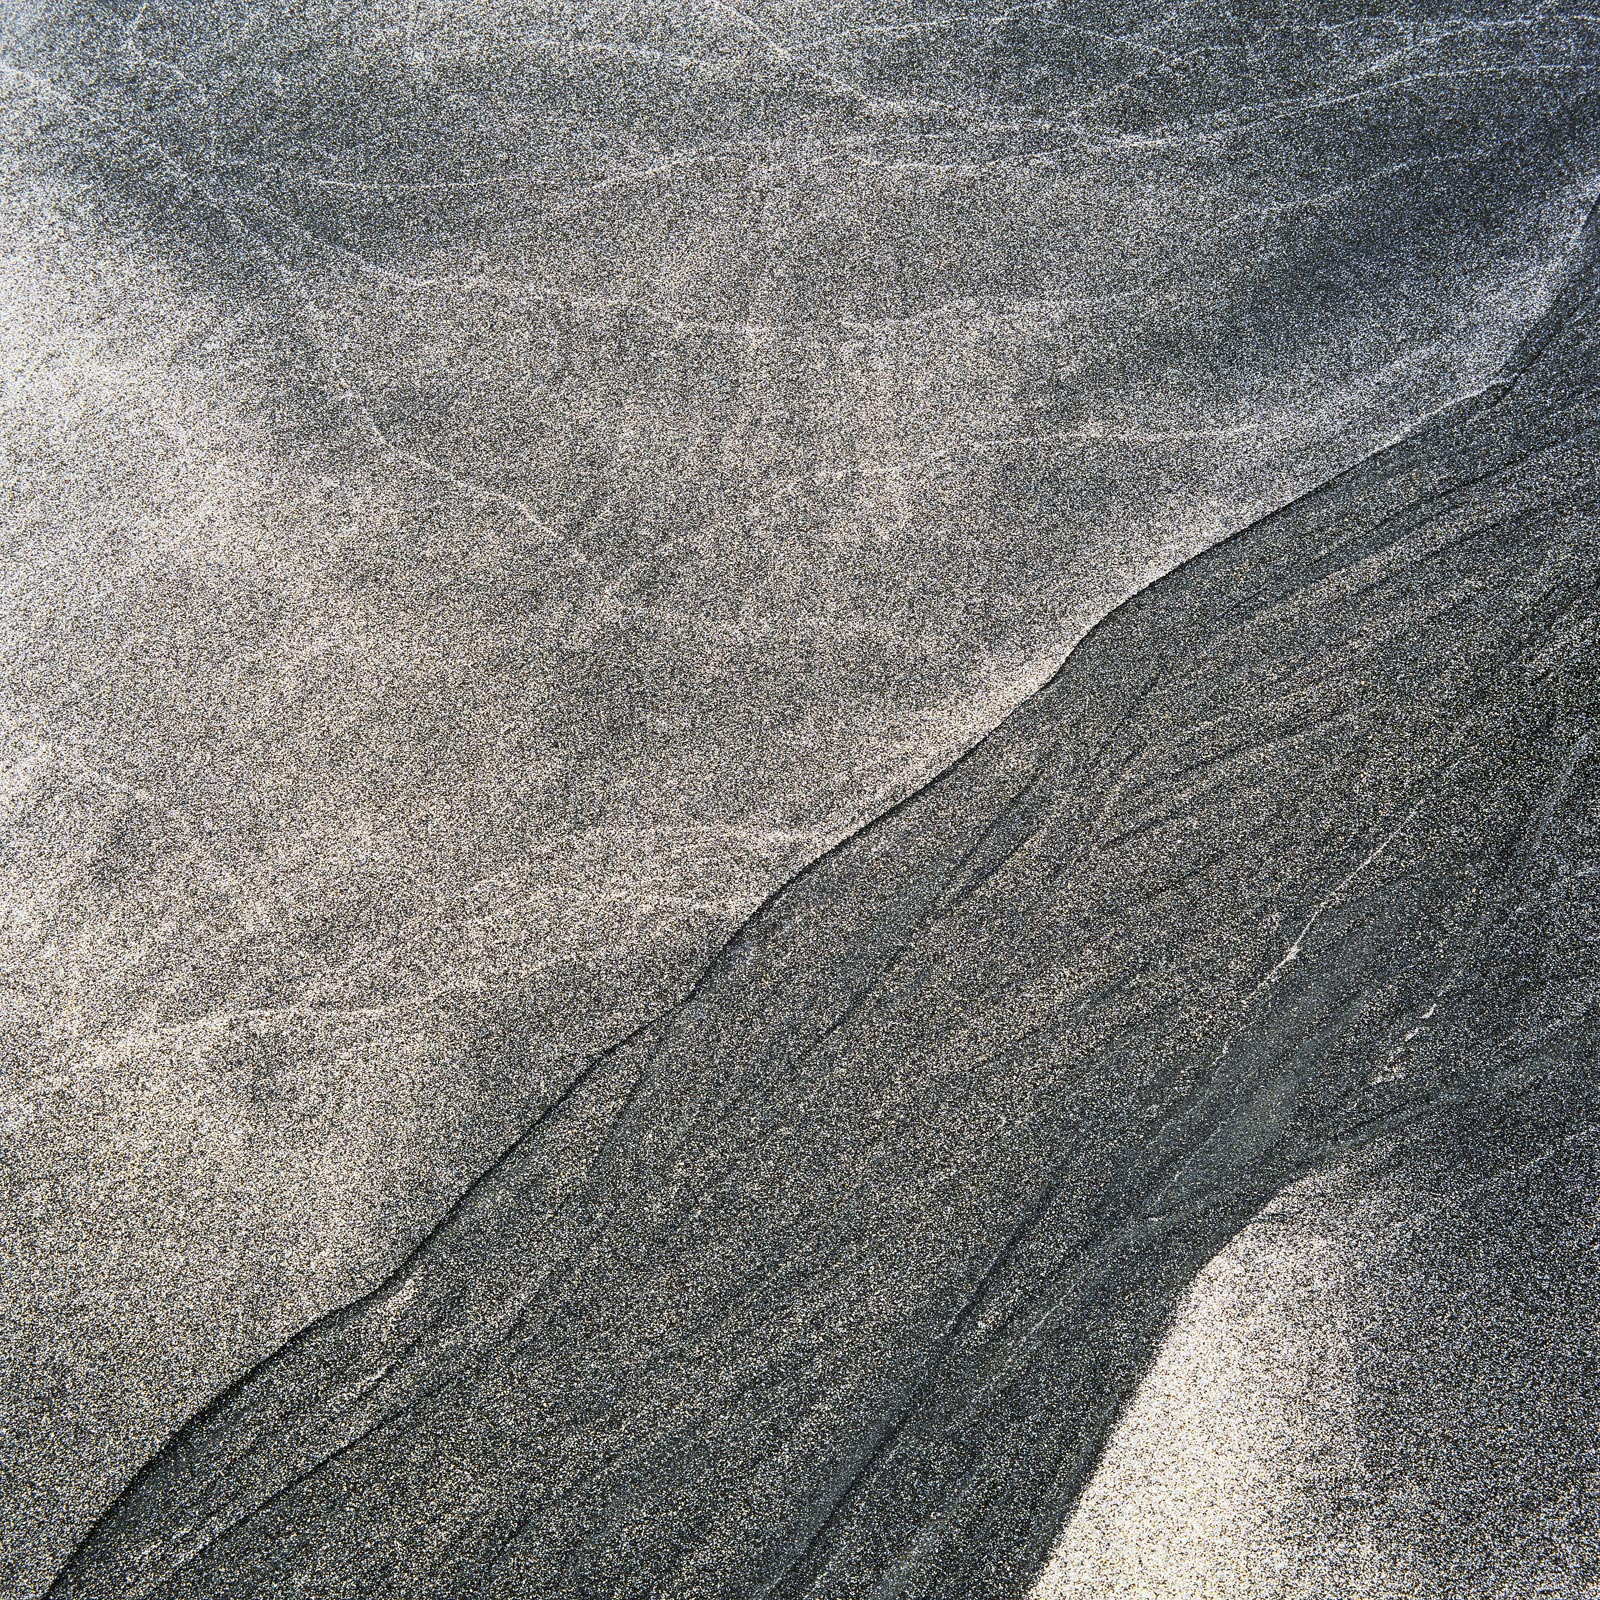 Black and white marbled sand on Staffin's beautiful little beach. The leaching of black rock particles eroded by tide and...